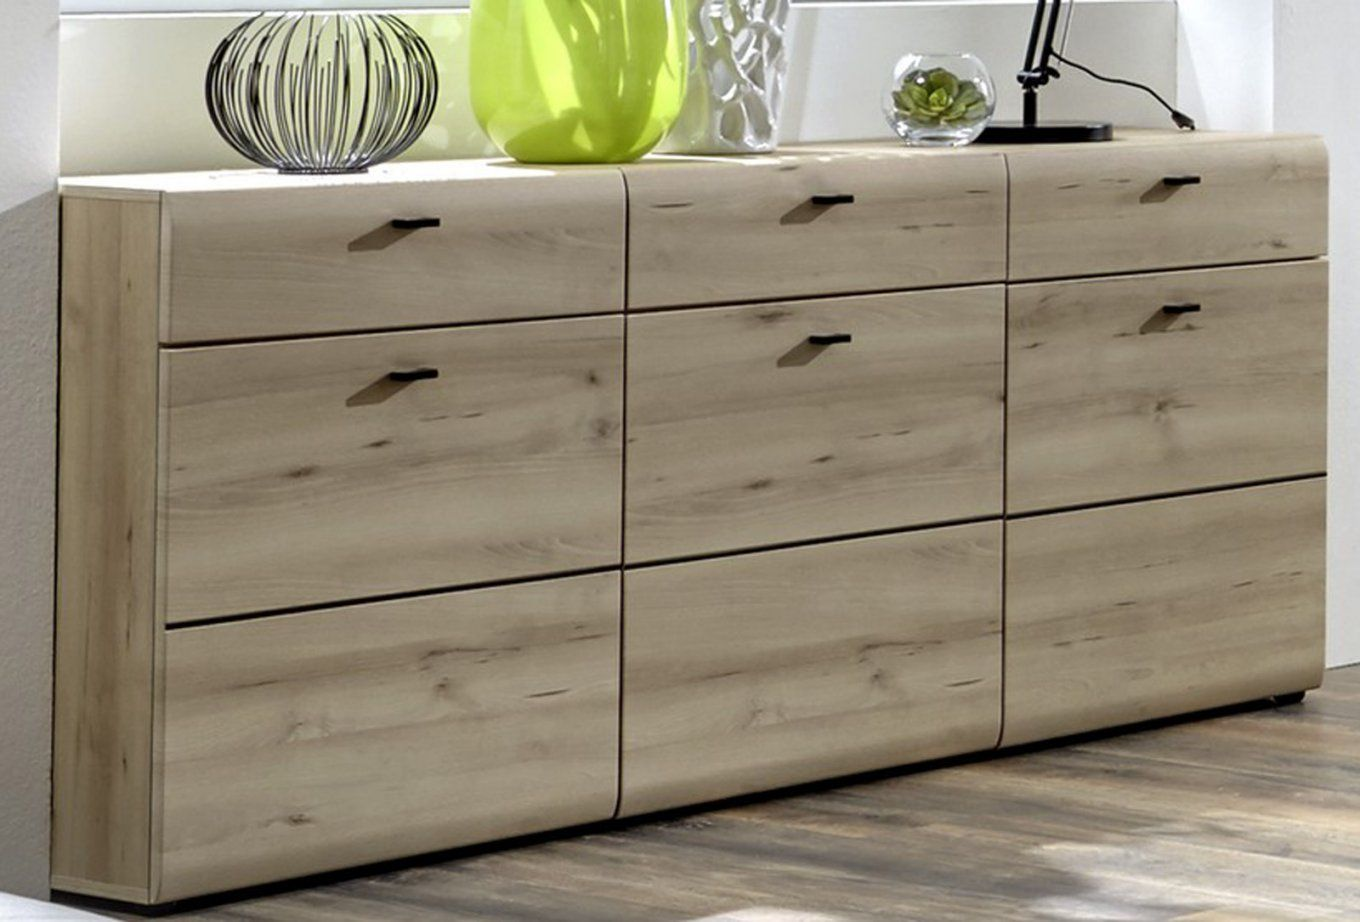 Flur Sideboard Kommoden U Sideboards With Flur Sideboard Amazing von Schmales Sideboard Für Flur Photo